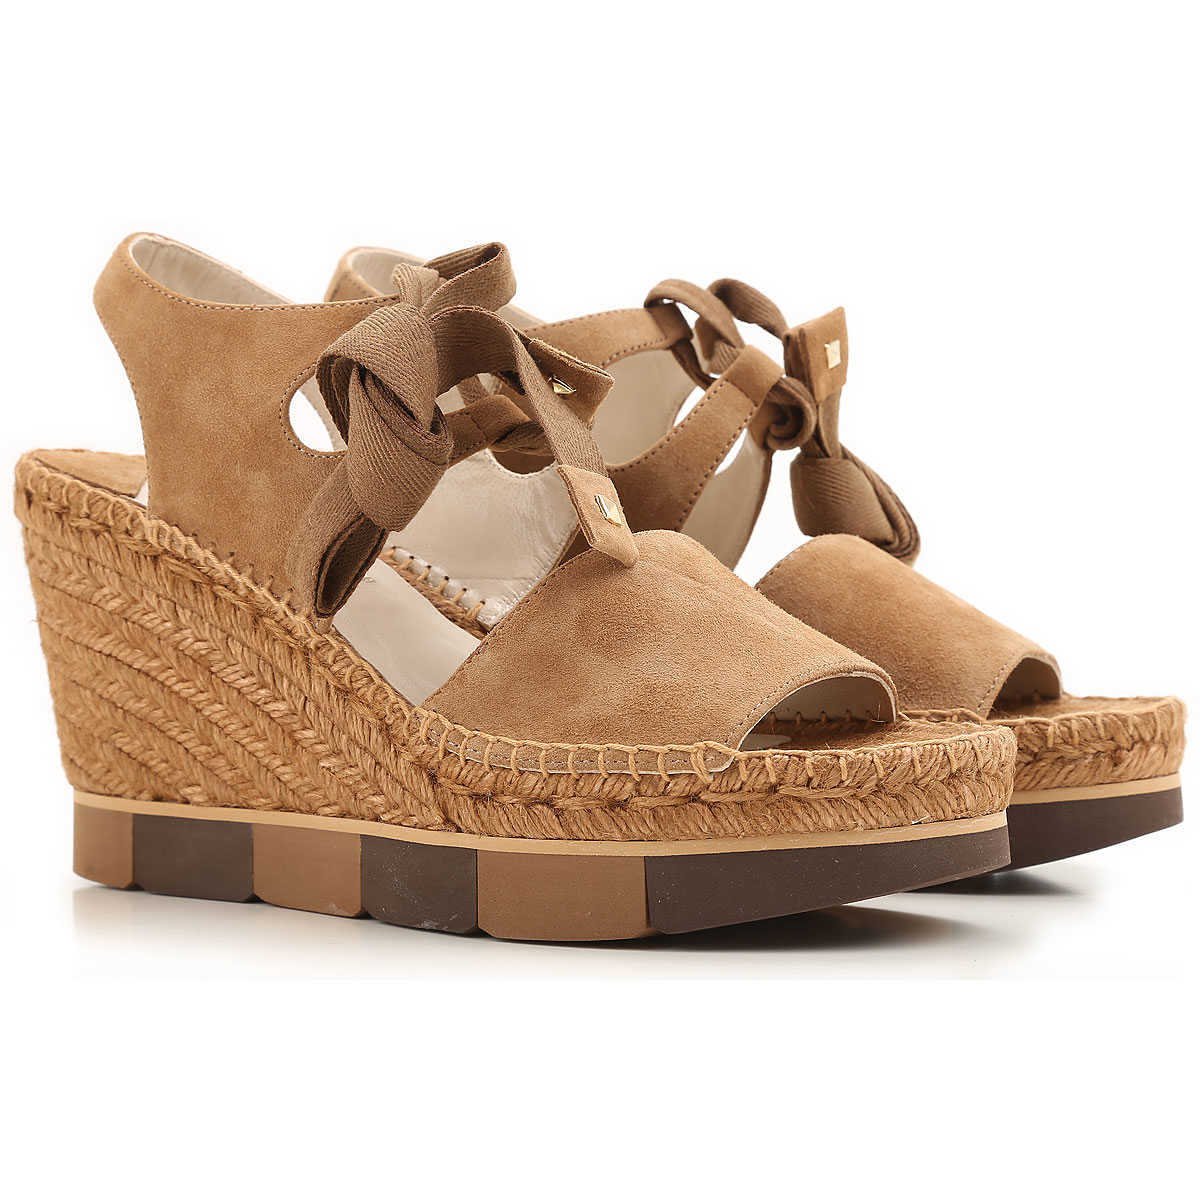 Paloma Barcelo Wedges for Women Taupe Canada - GOOFASH - Womens HOUSE SHOES